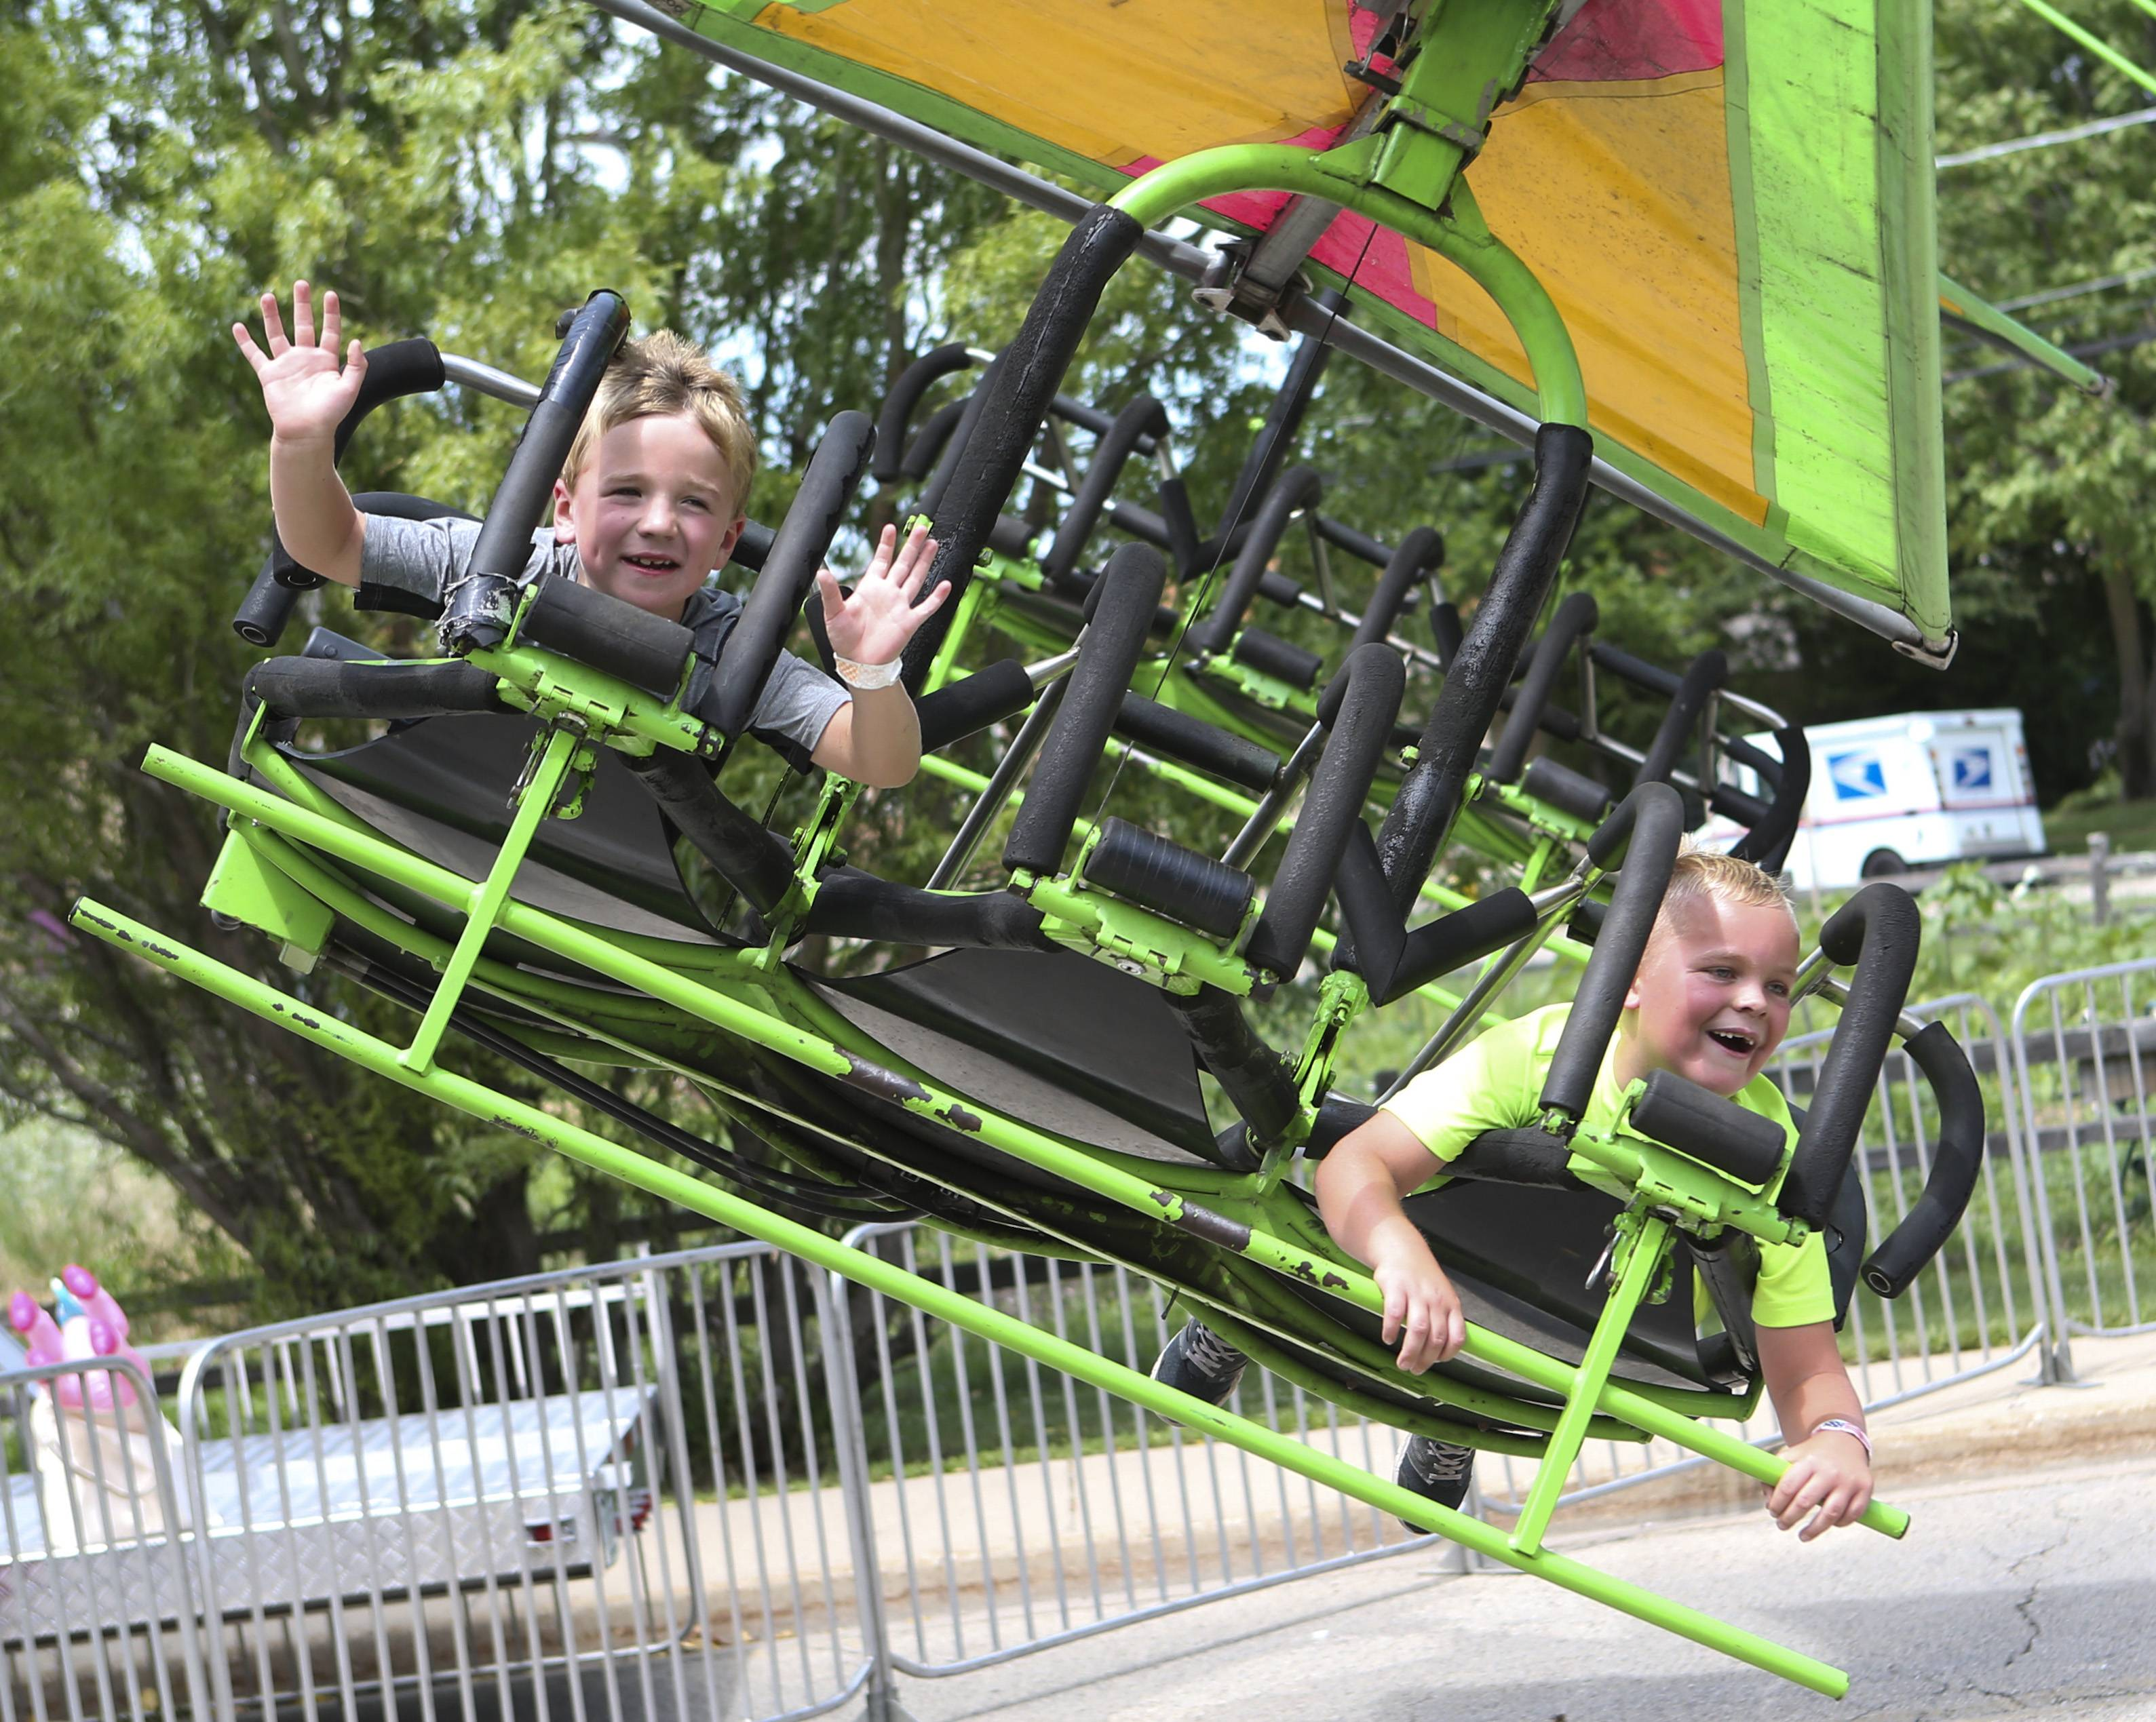 Emery Ipsen, 6, of Antioch and Owen Shea, 7, of Antioch smile while riding a ride during the Antioch Taste of Summer Carnival on Saturday, July 18, in Antioch.